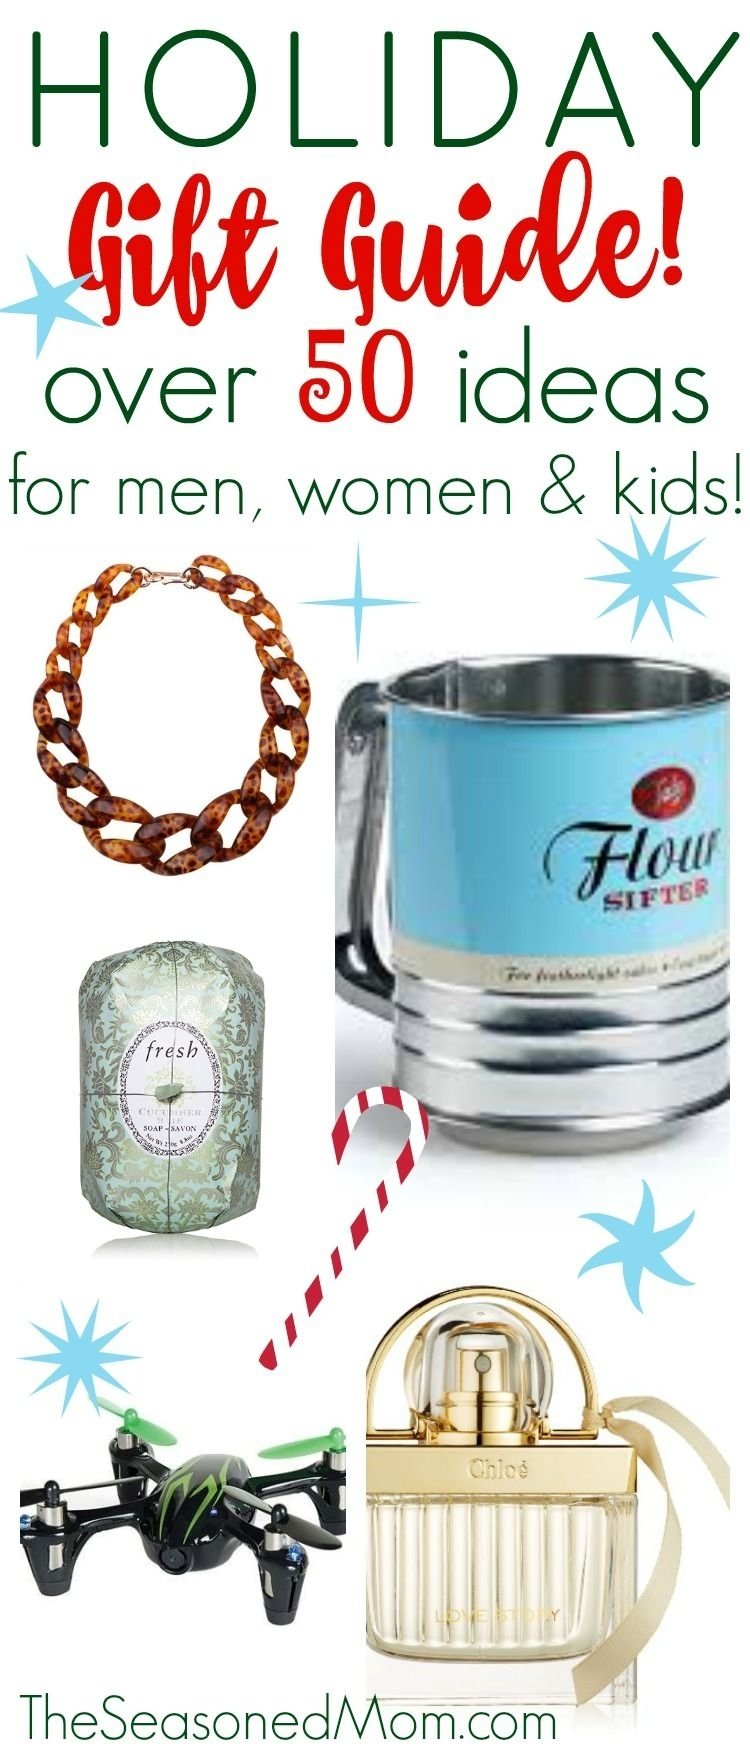 christmas gift ideas: holiday gift guide 2015 | holiday gift guide